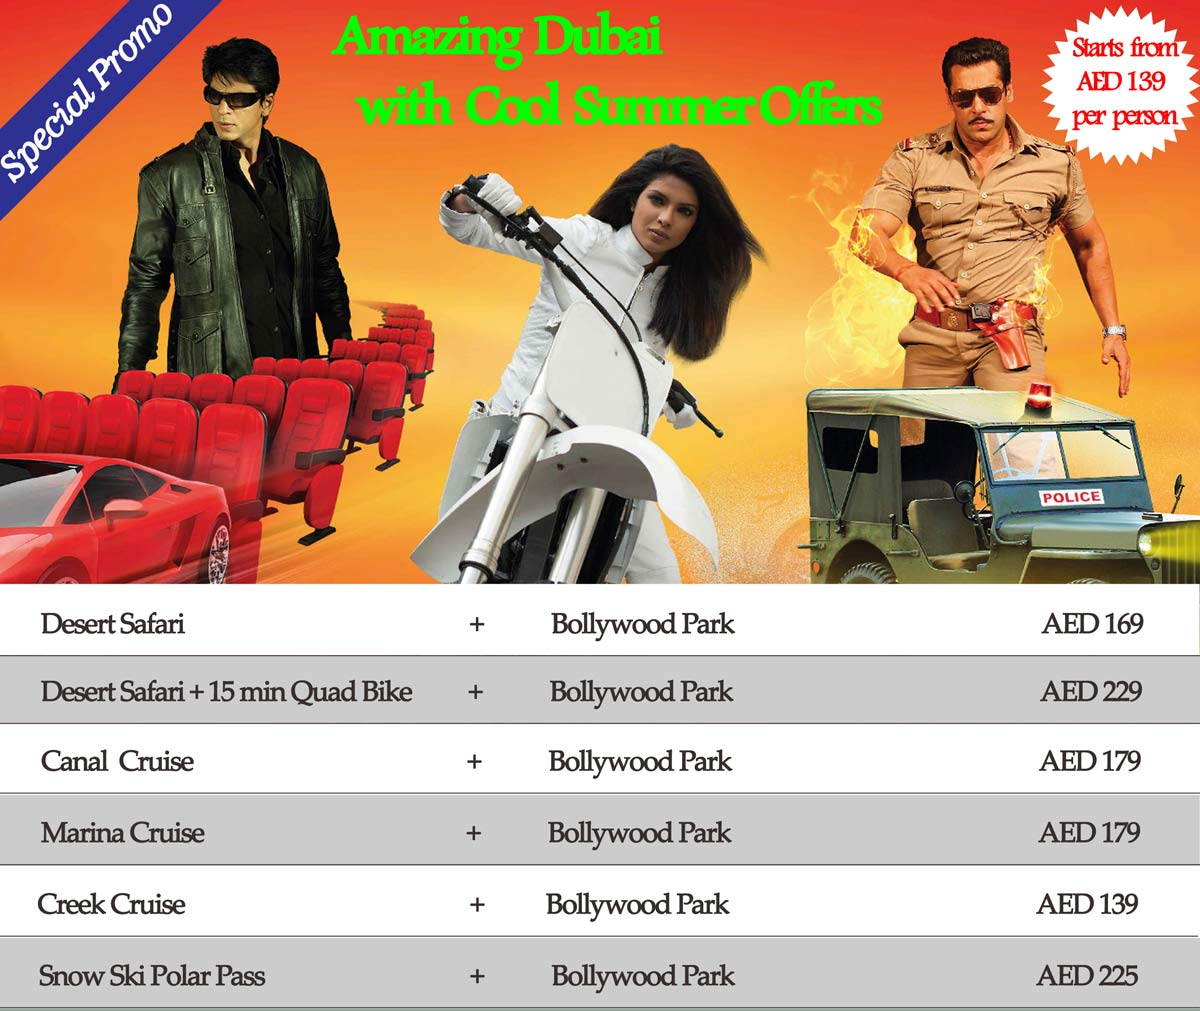 bollywood-park-dubai.jpg